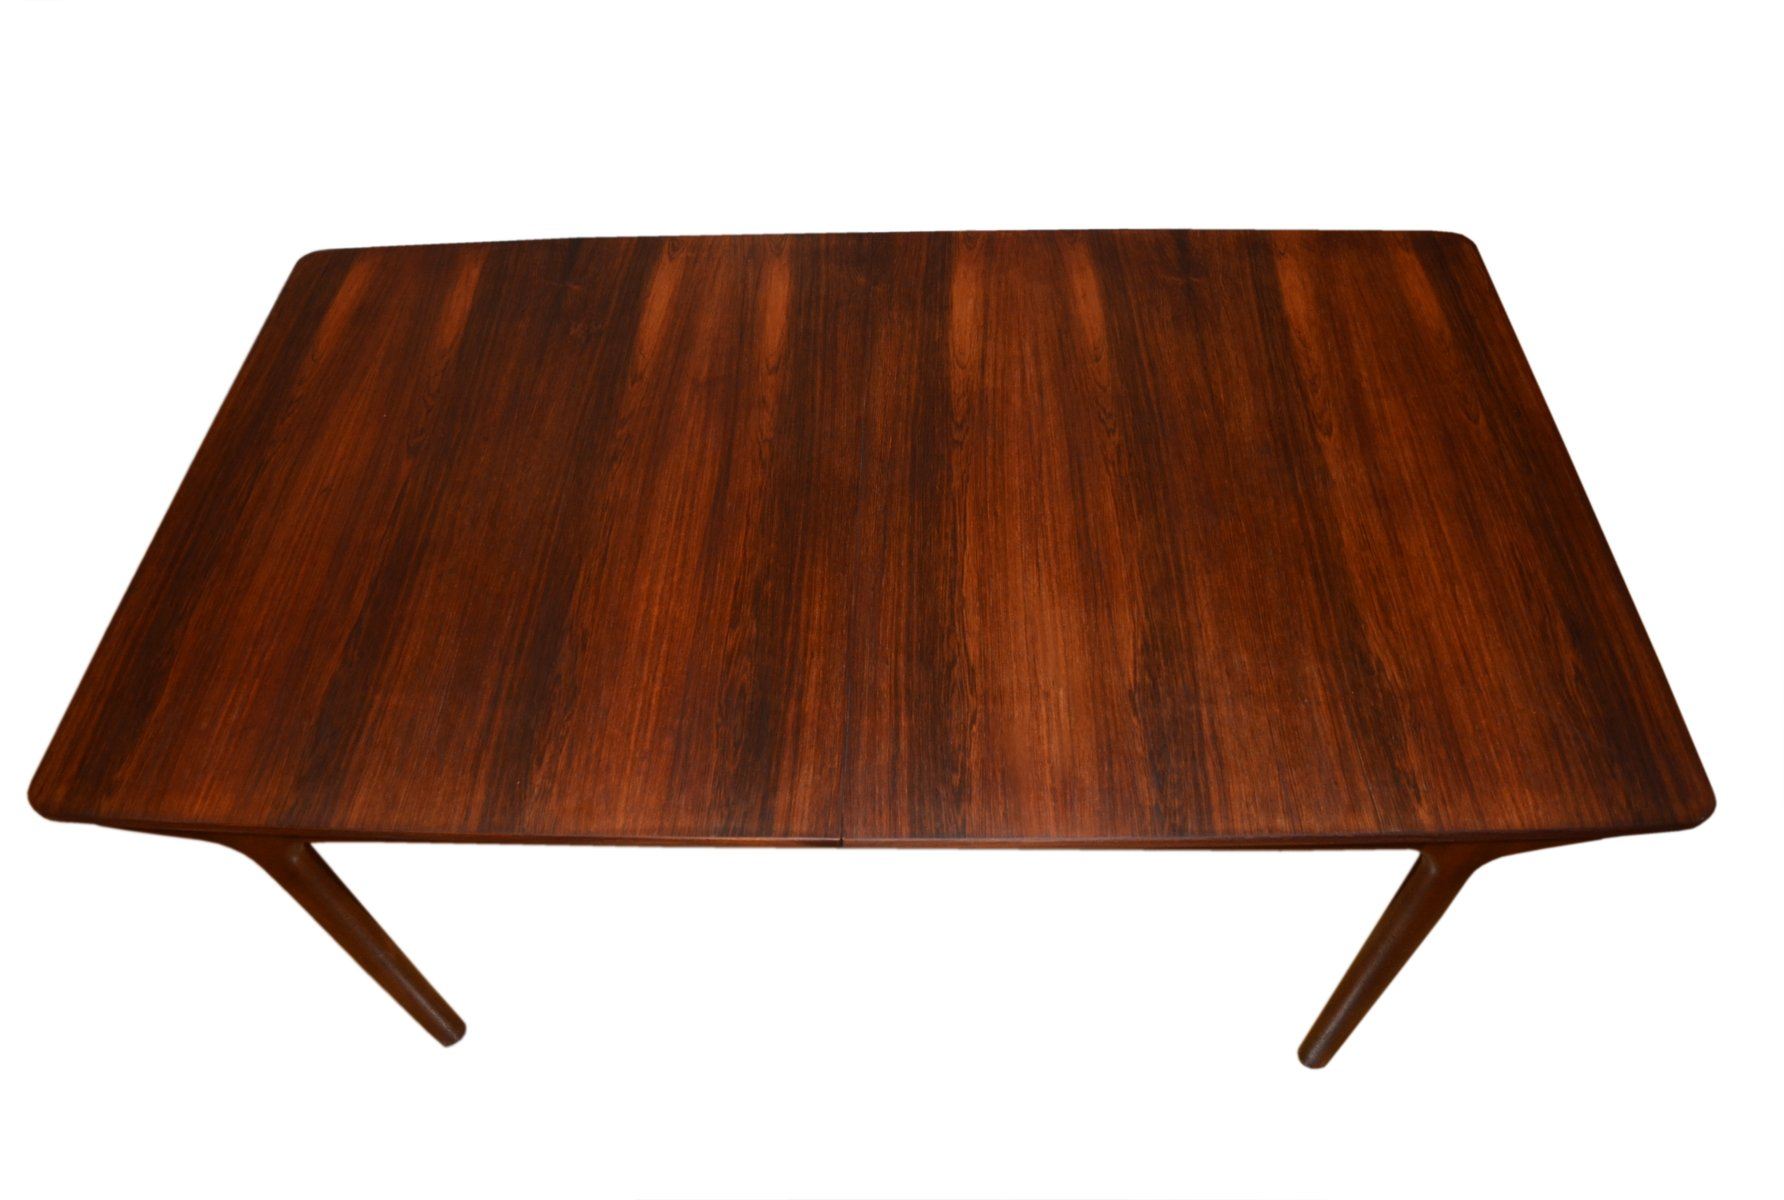 Grande table de salle manger rallonge mid century 12 for Grande table de salle a manger design